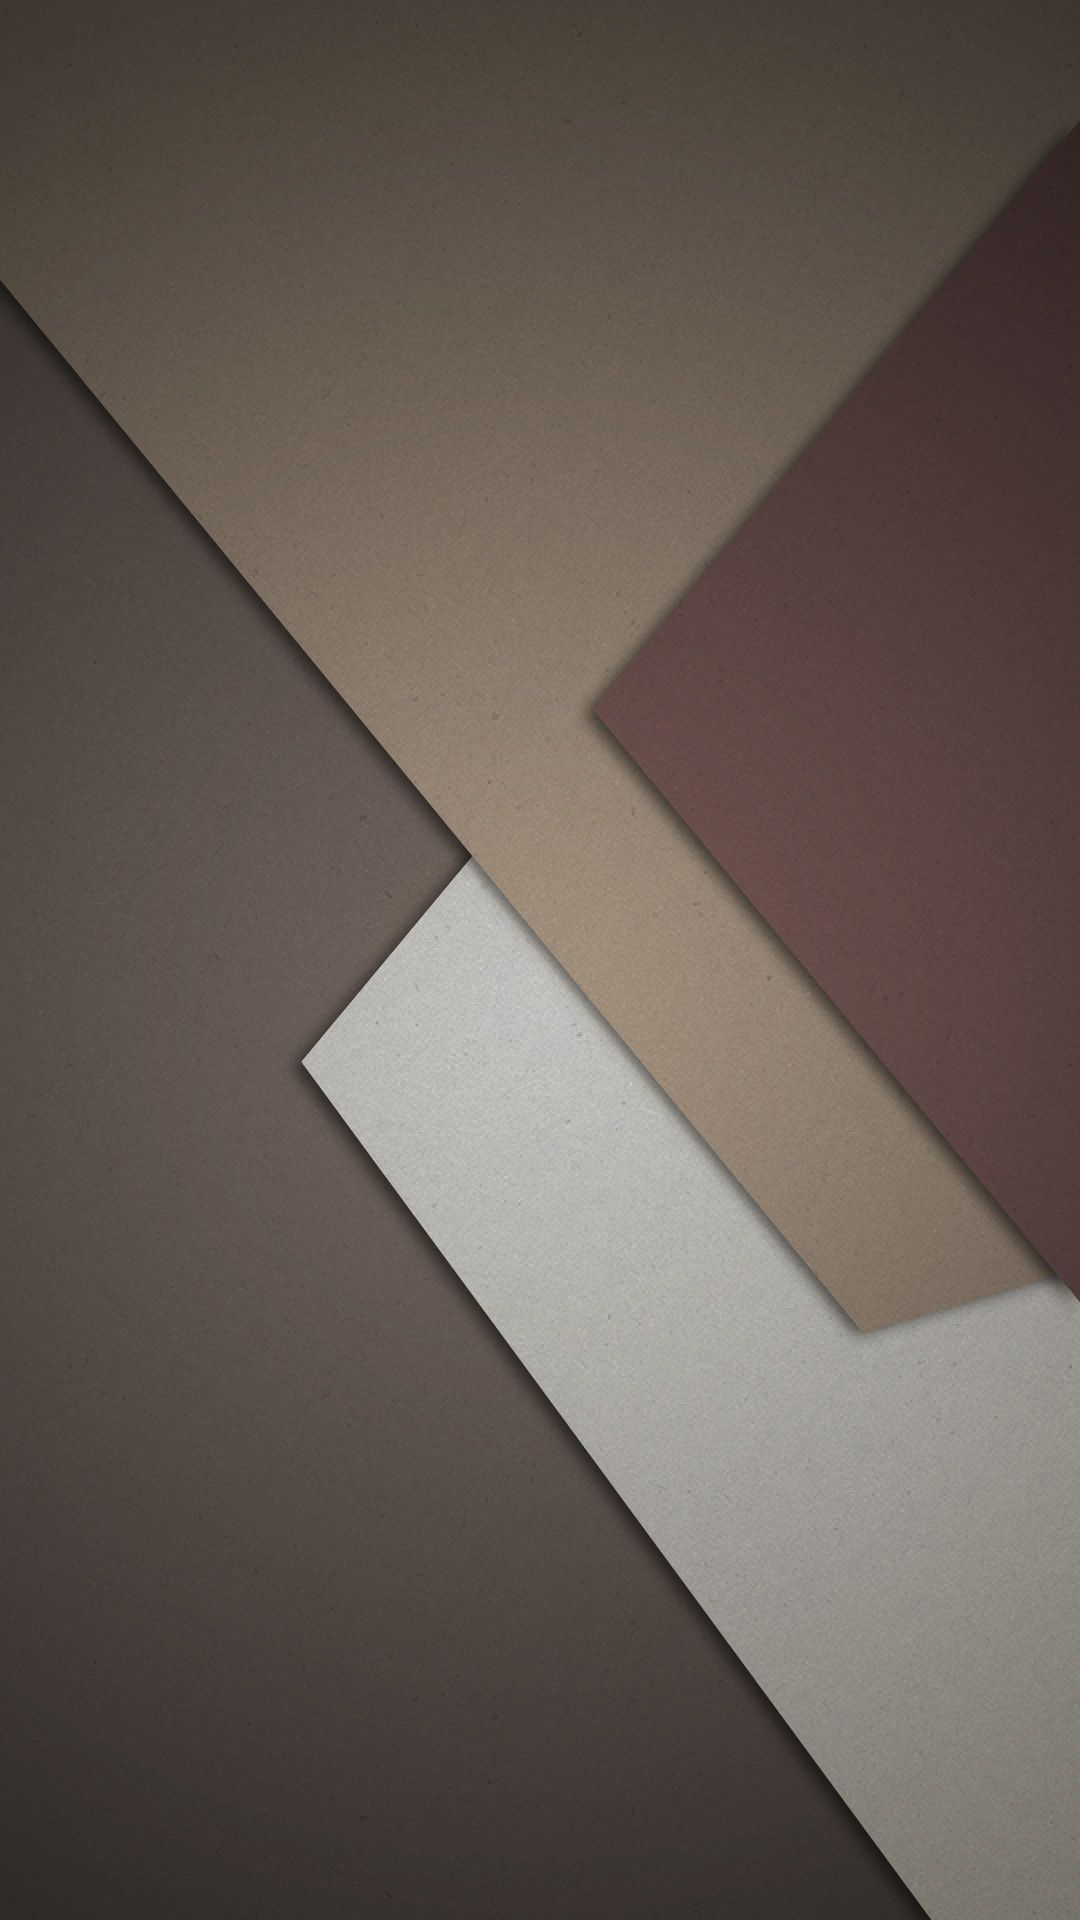 Android Marshmallow Material Design Wallpaper